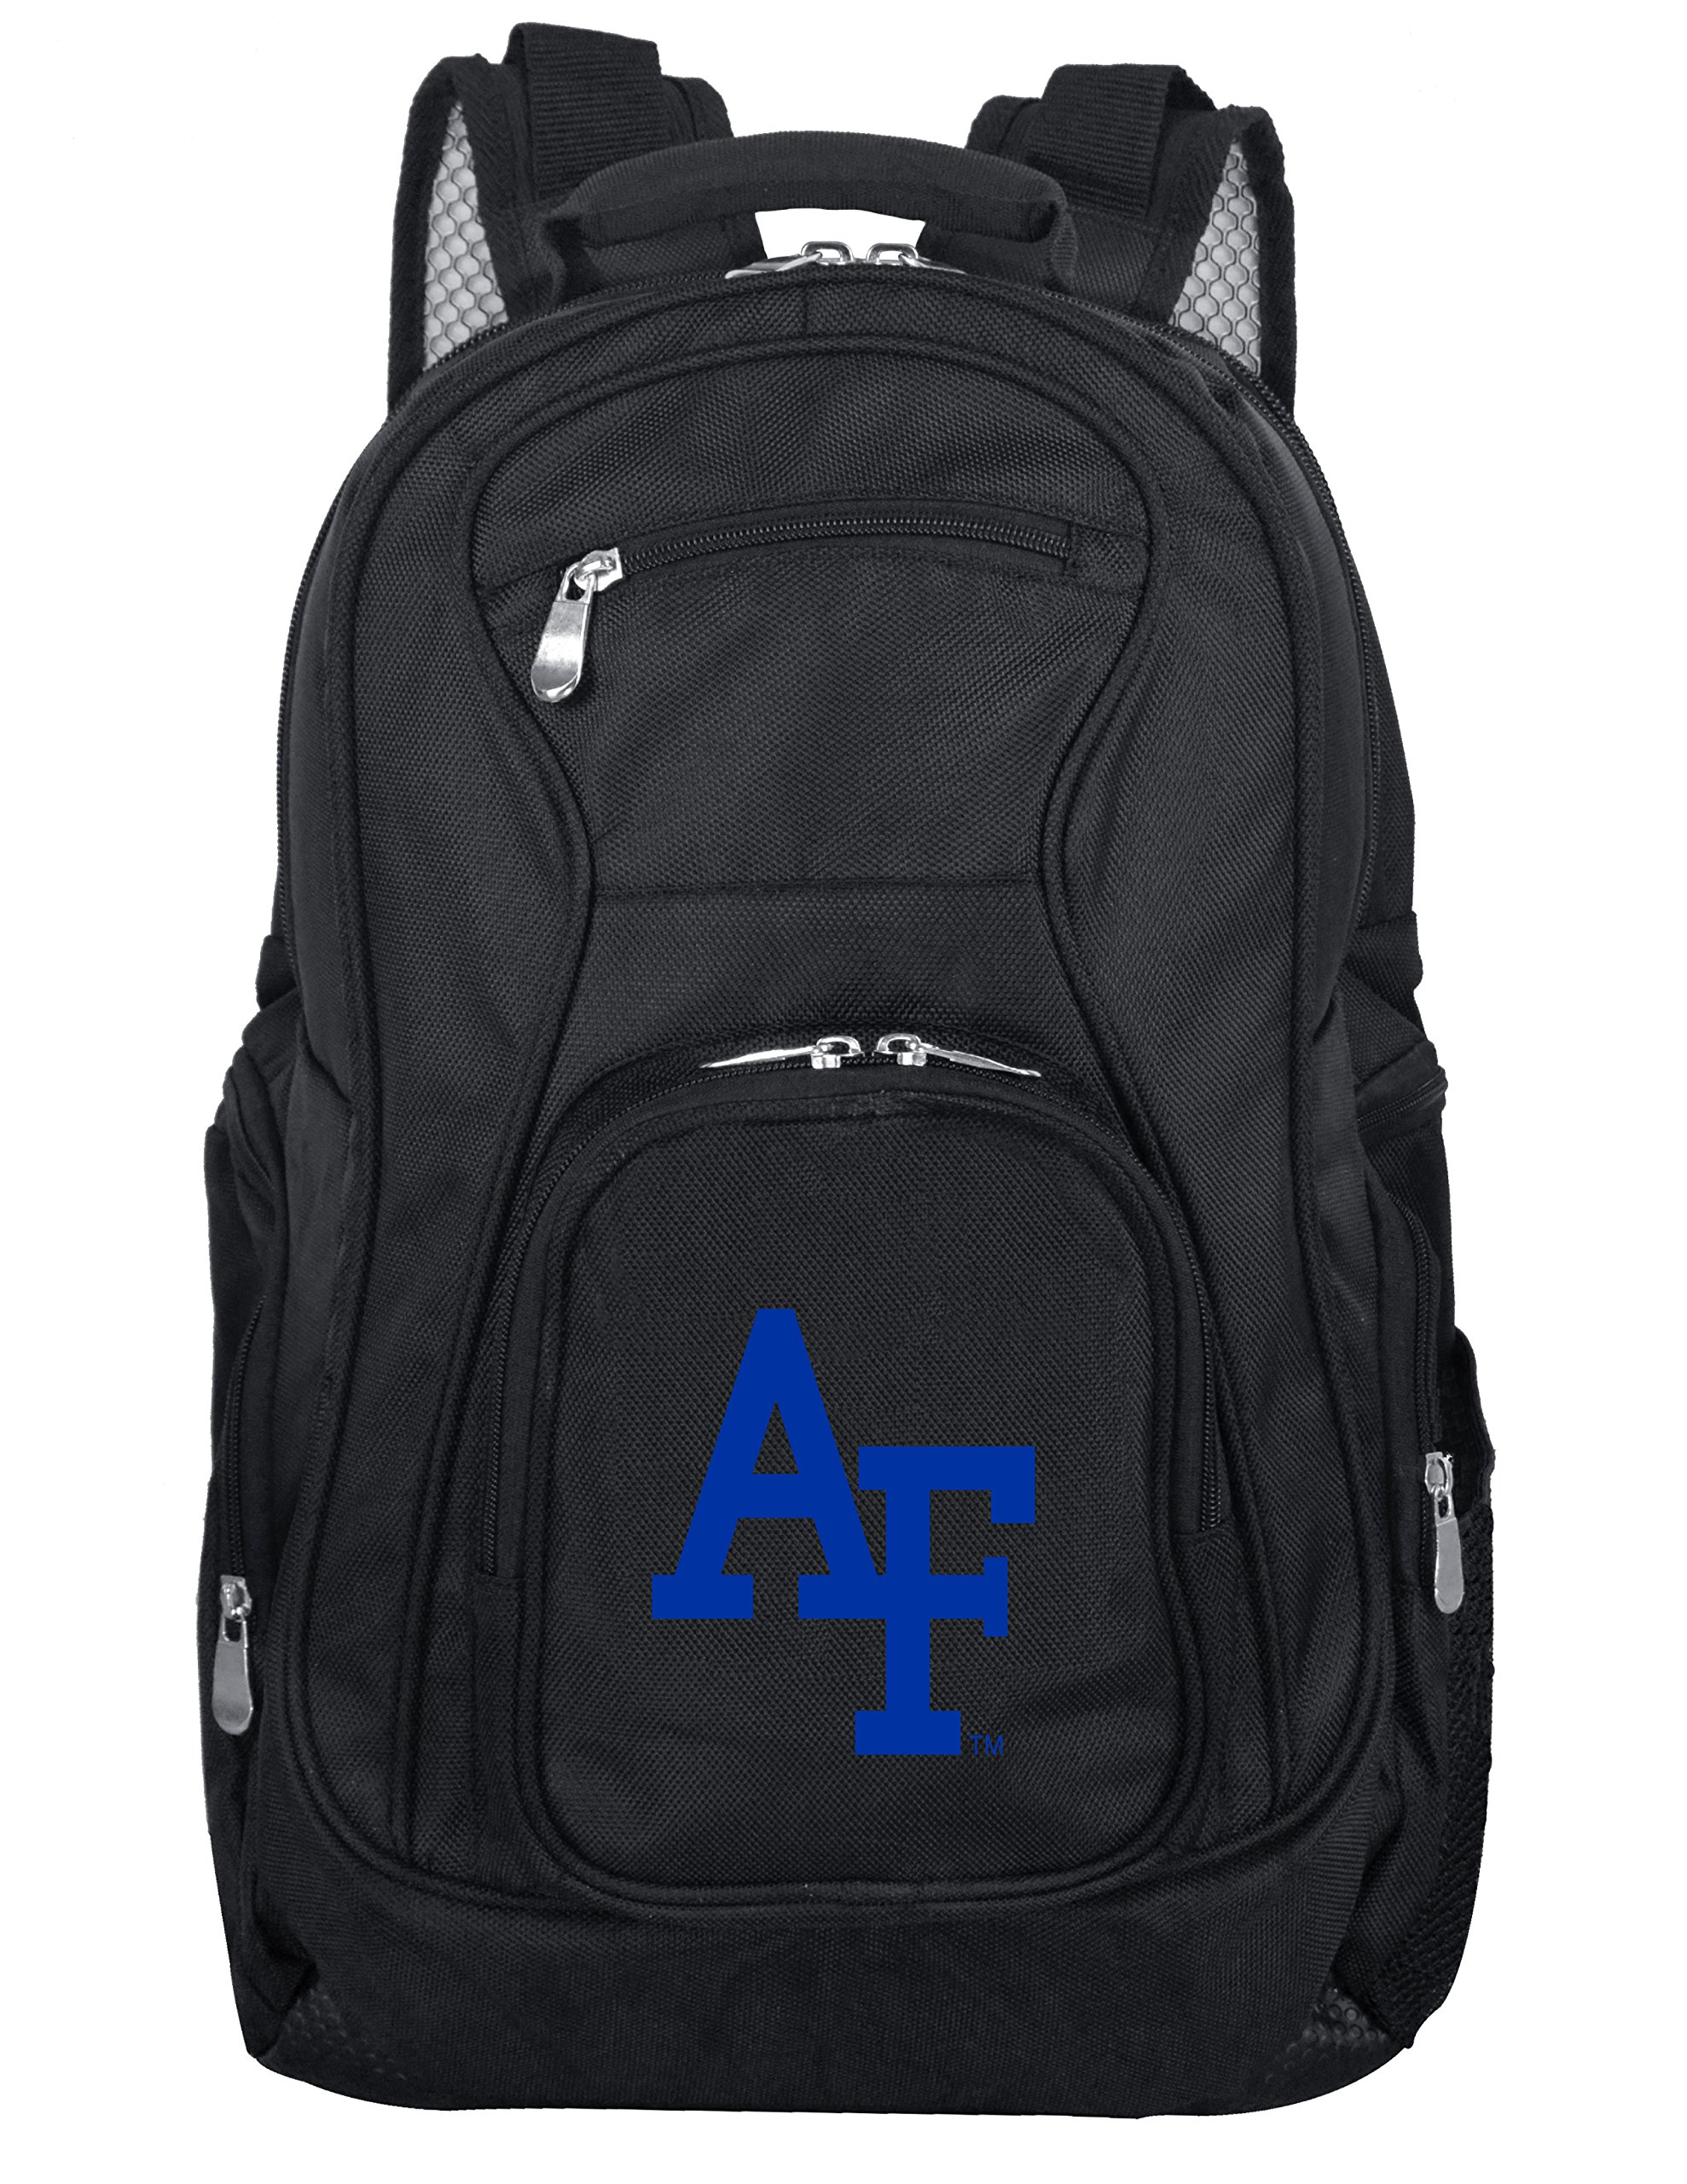 Denco NCAA Air Force Falcons Voyager Laptop Backpack, 19-inches, Black